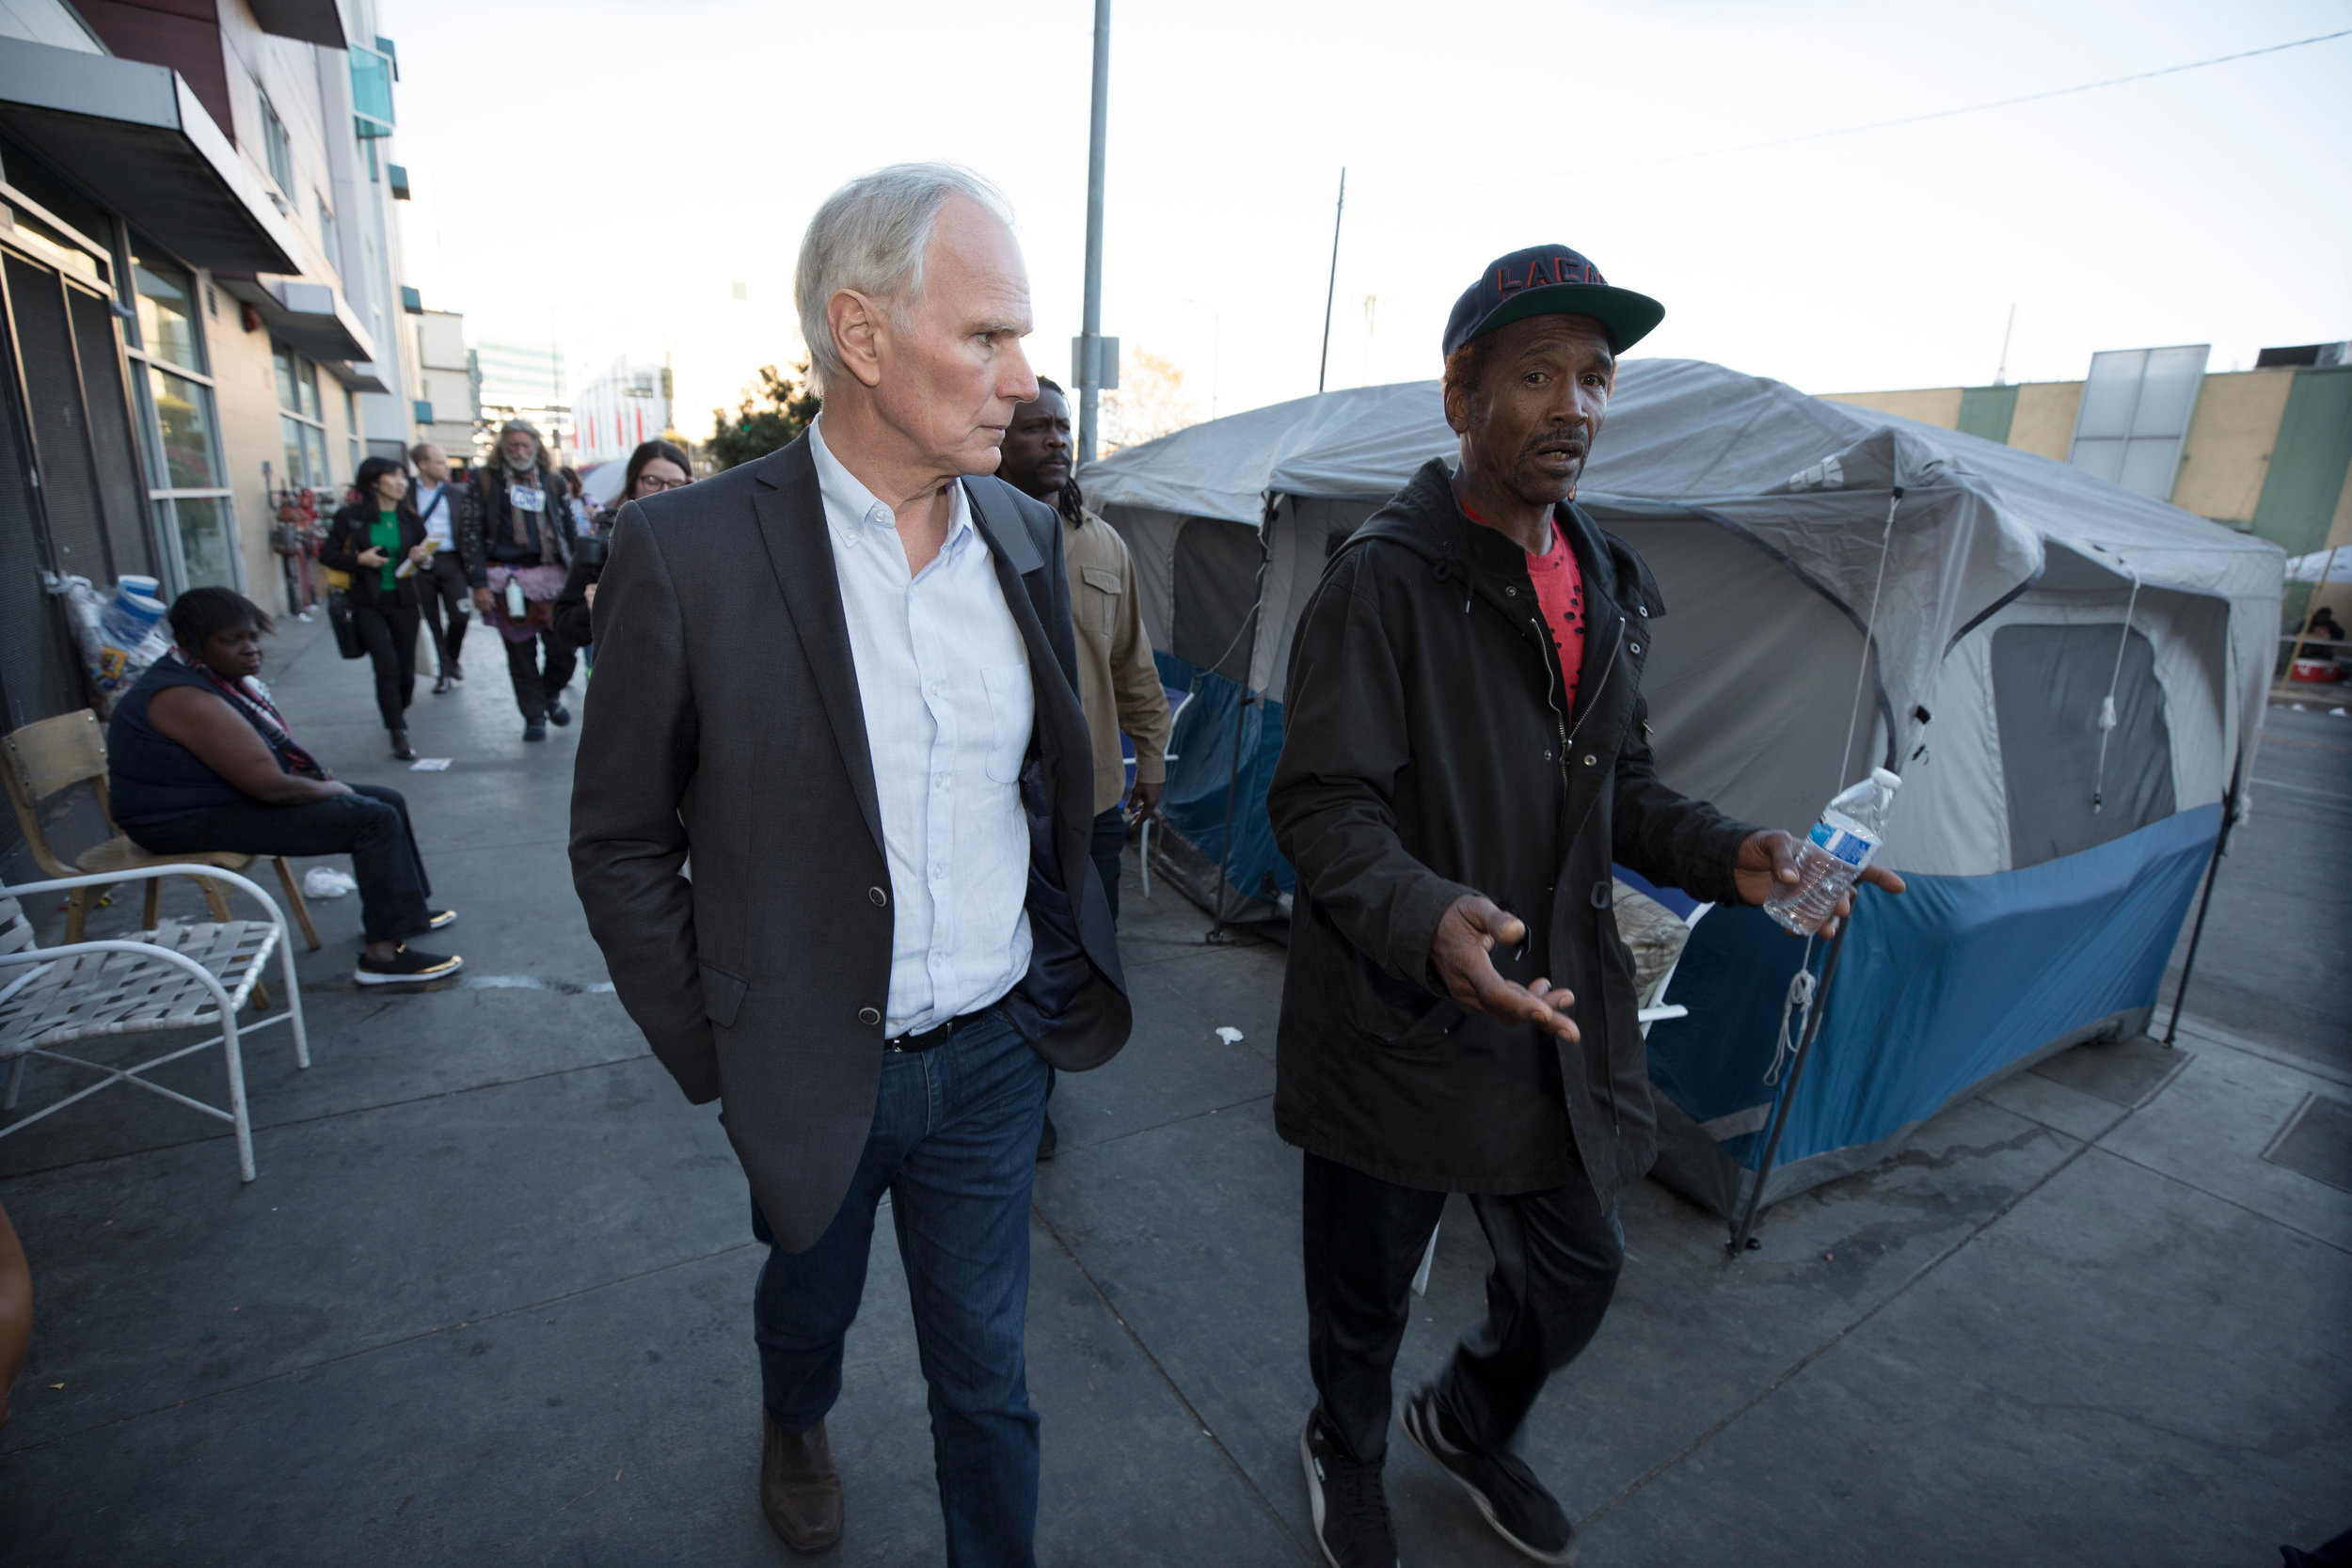 Philip Alston, United Nations Special Rapporteur explores Skid Row in Los Angeles, California— Photograph: Dan Tuffs for the Guardian